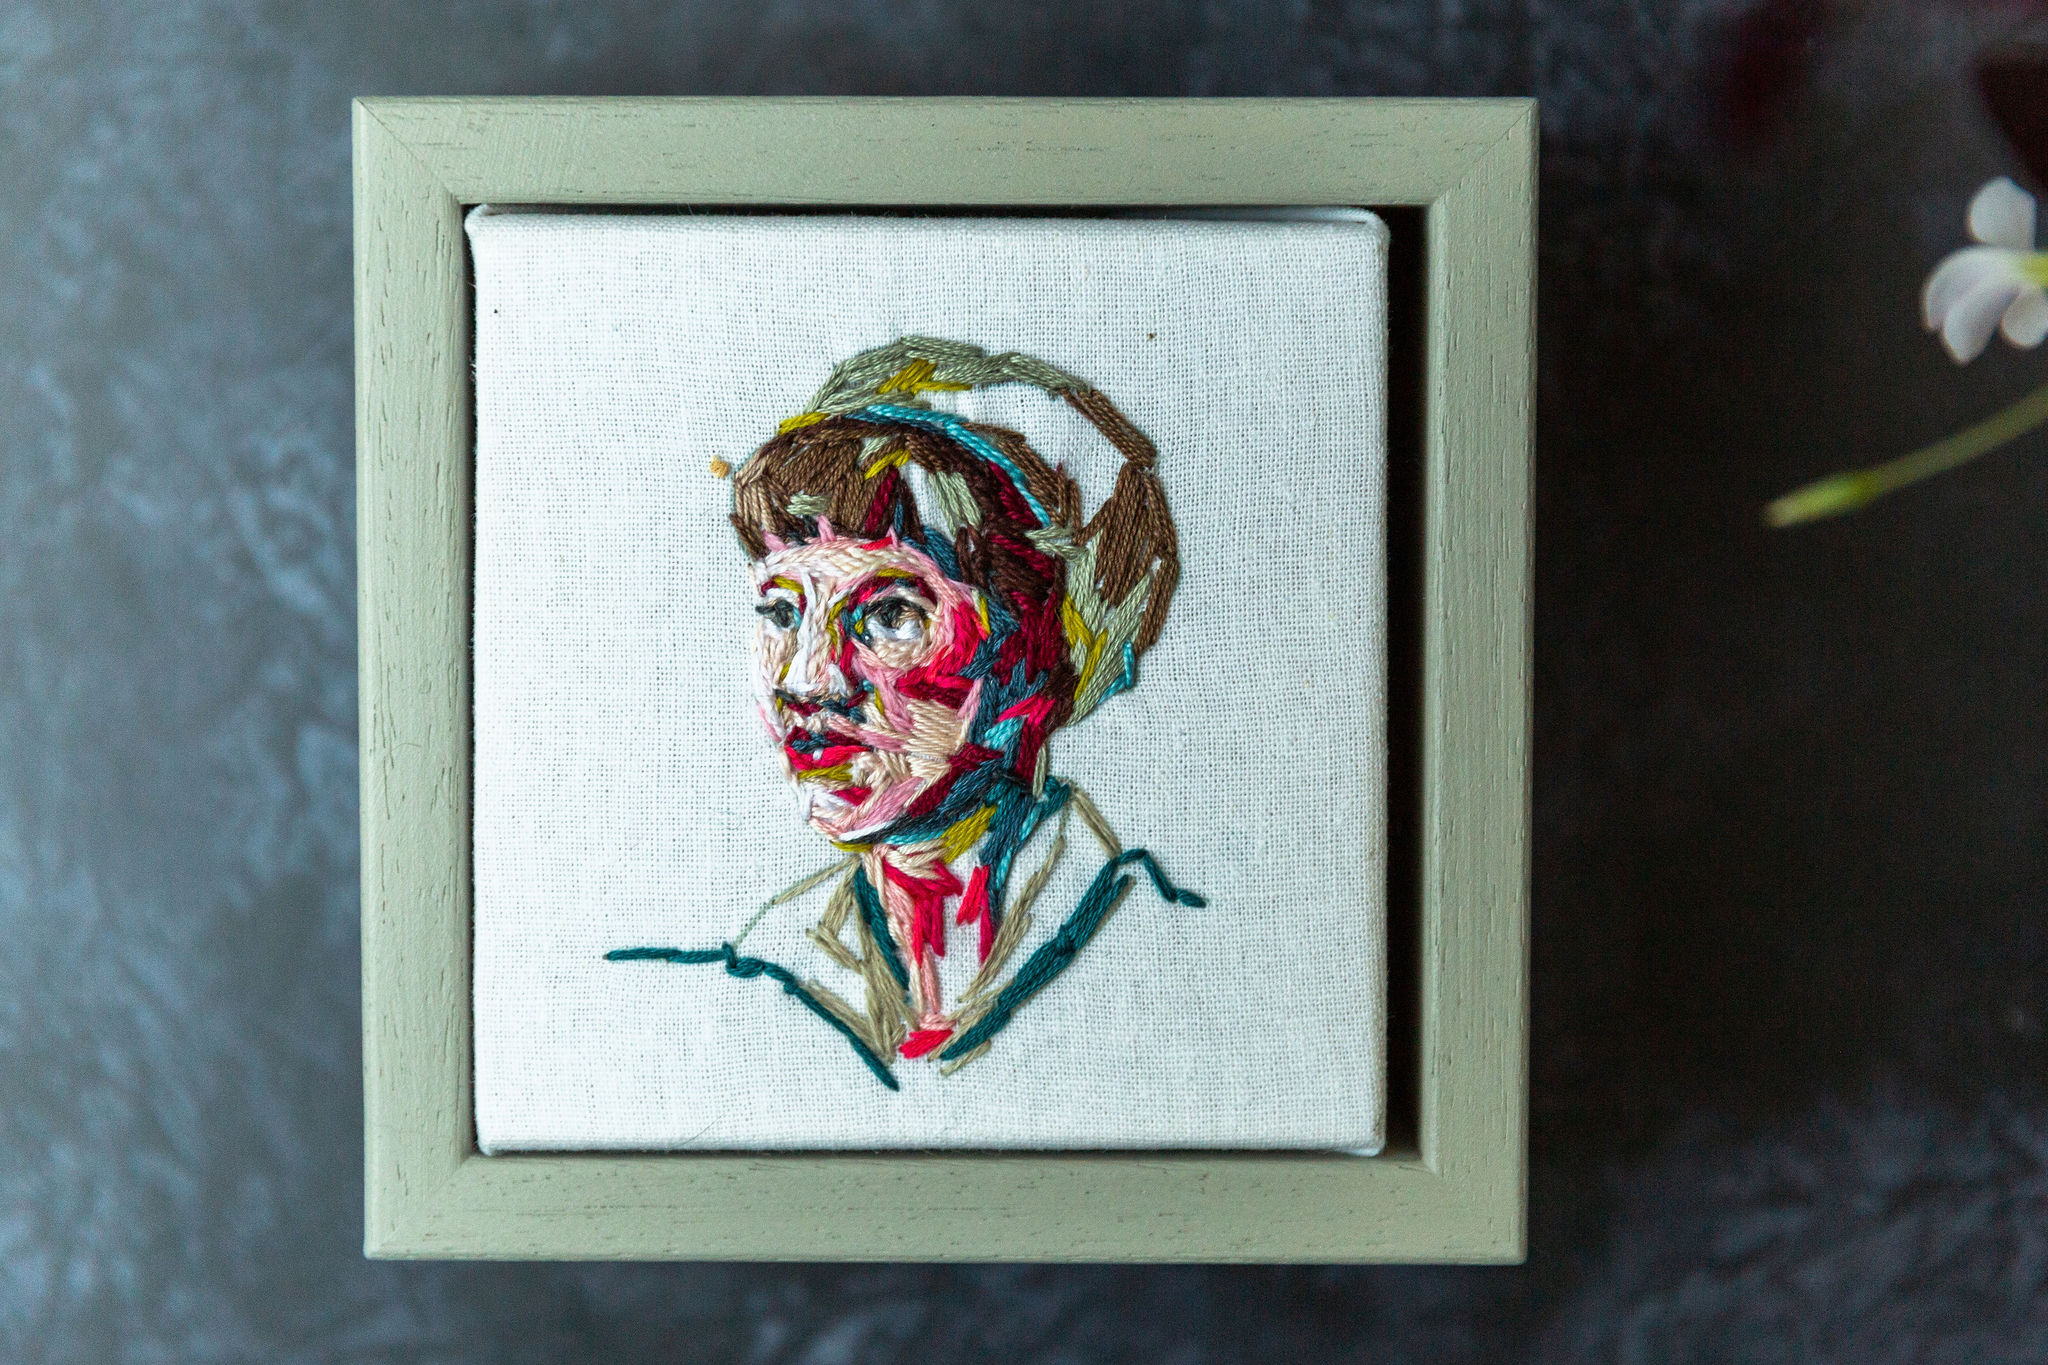 sylvia Plath by Marna Lunt